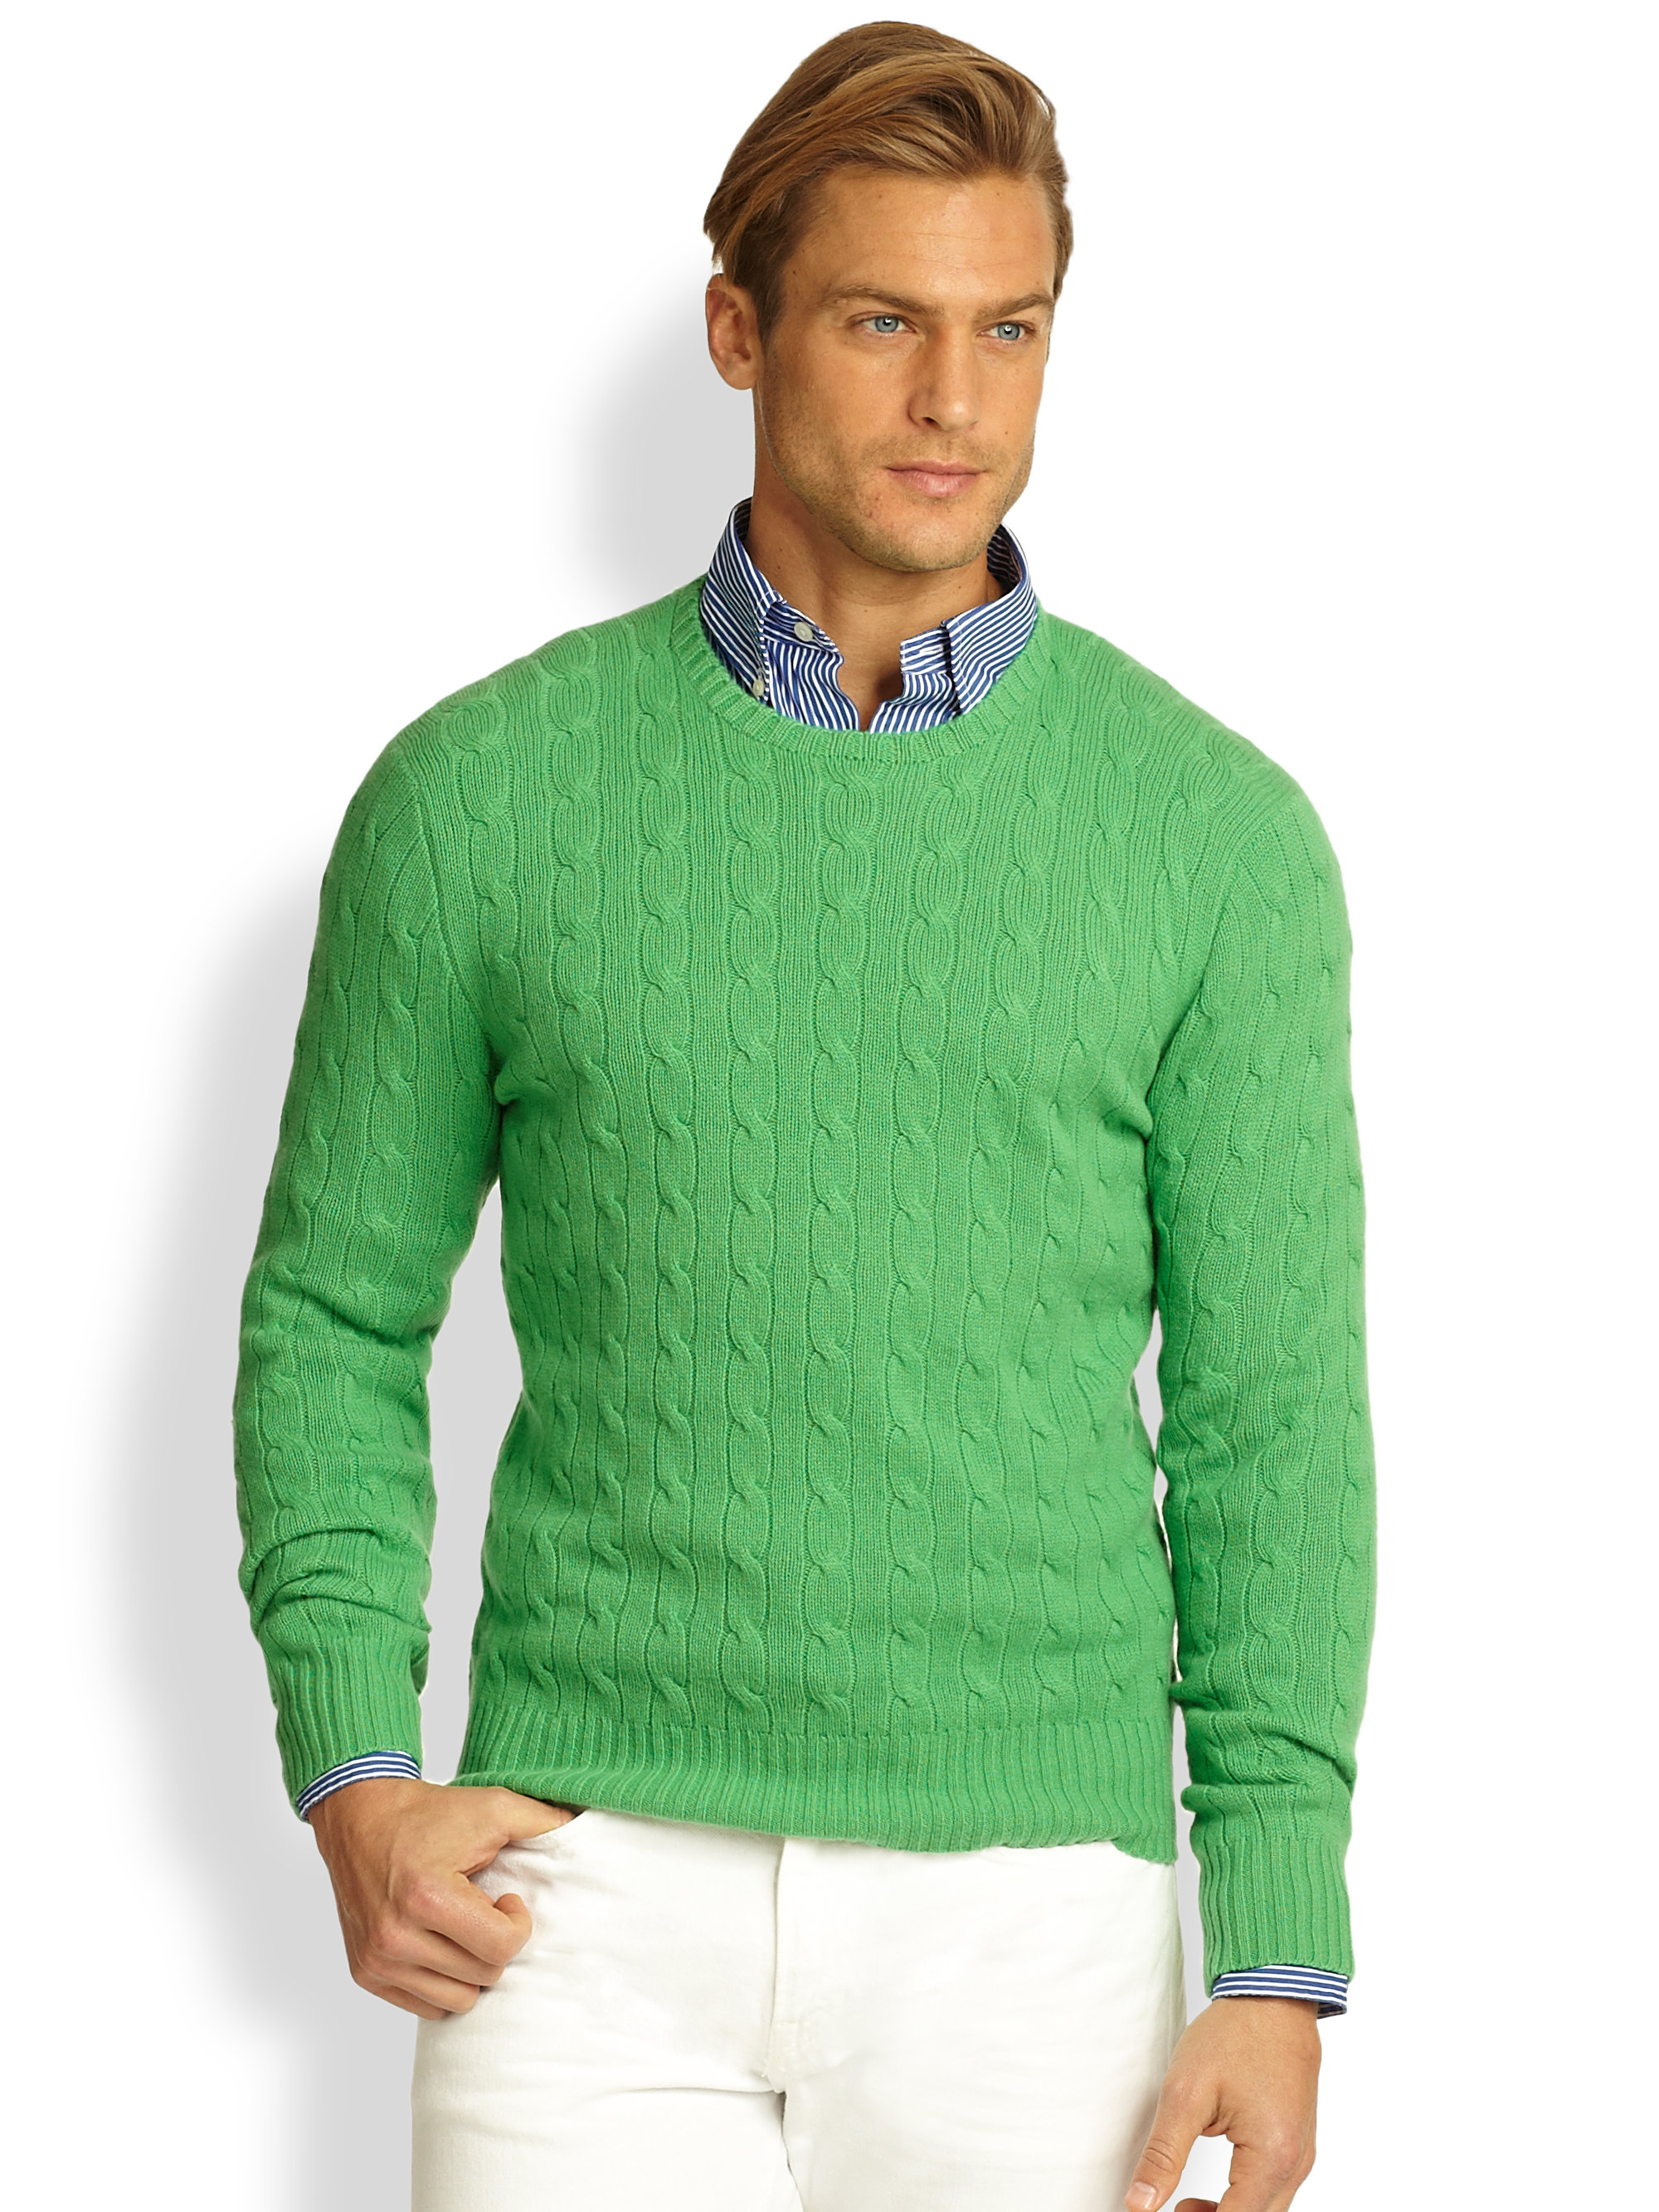 Lyst Polo Ralph Lauren Cableknit Cashmere Sweater In Green For Men